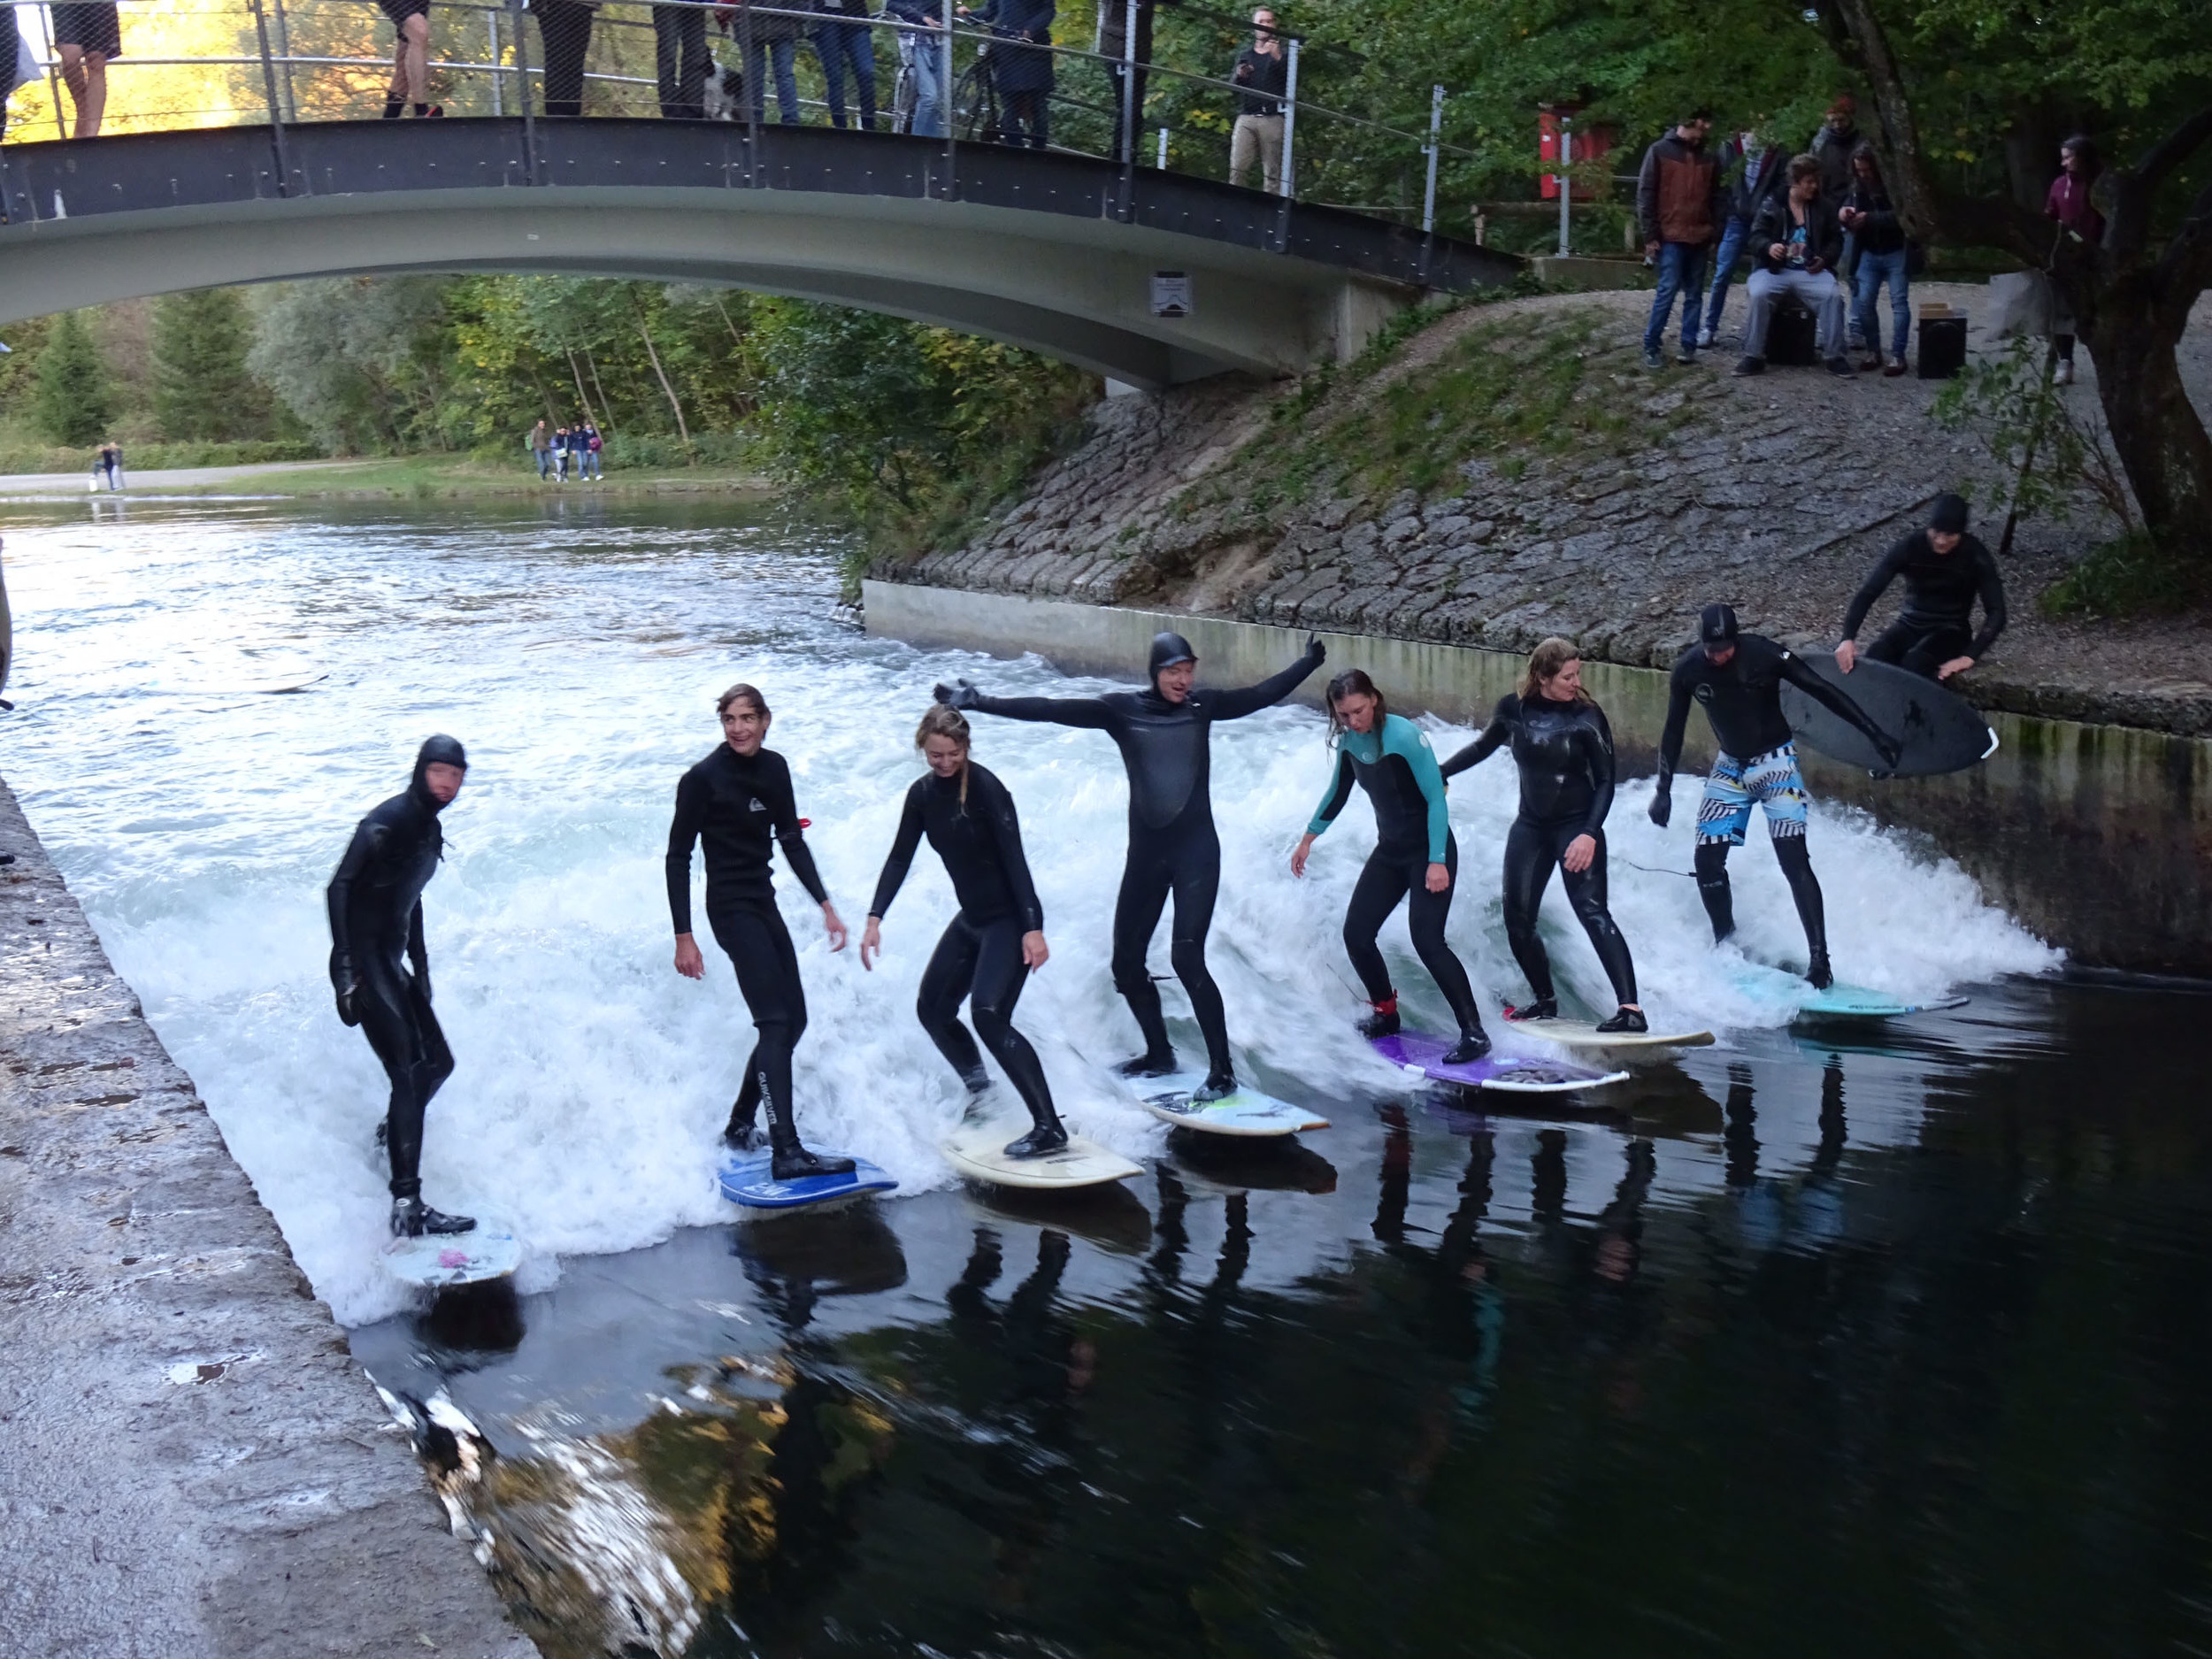 Sharing the wave: river surfing in Munich, Floßlände